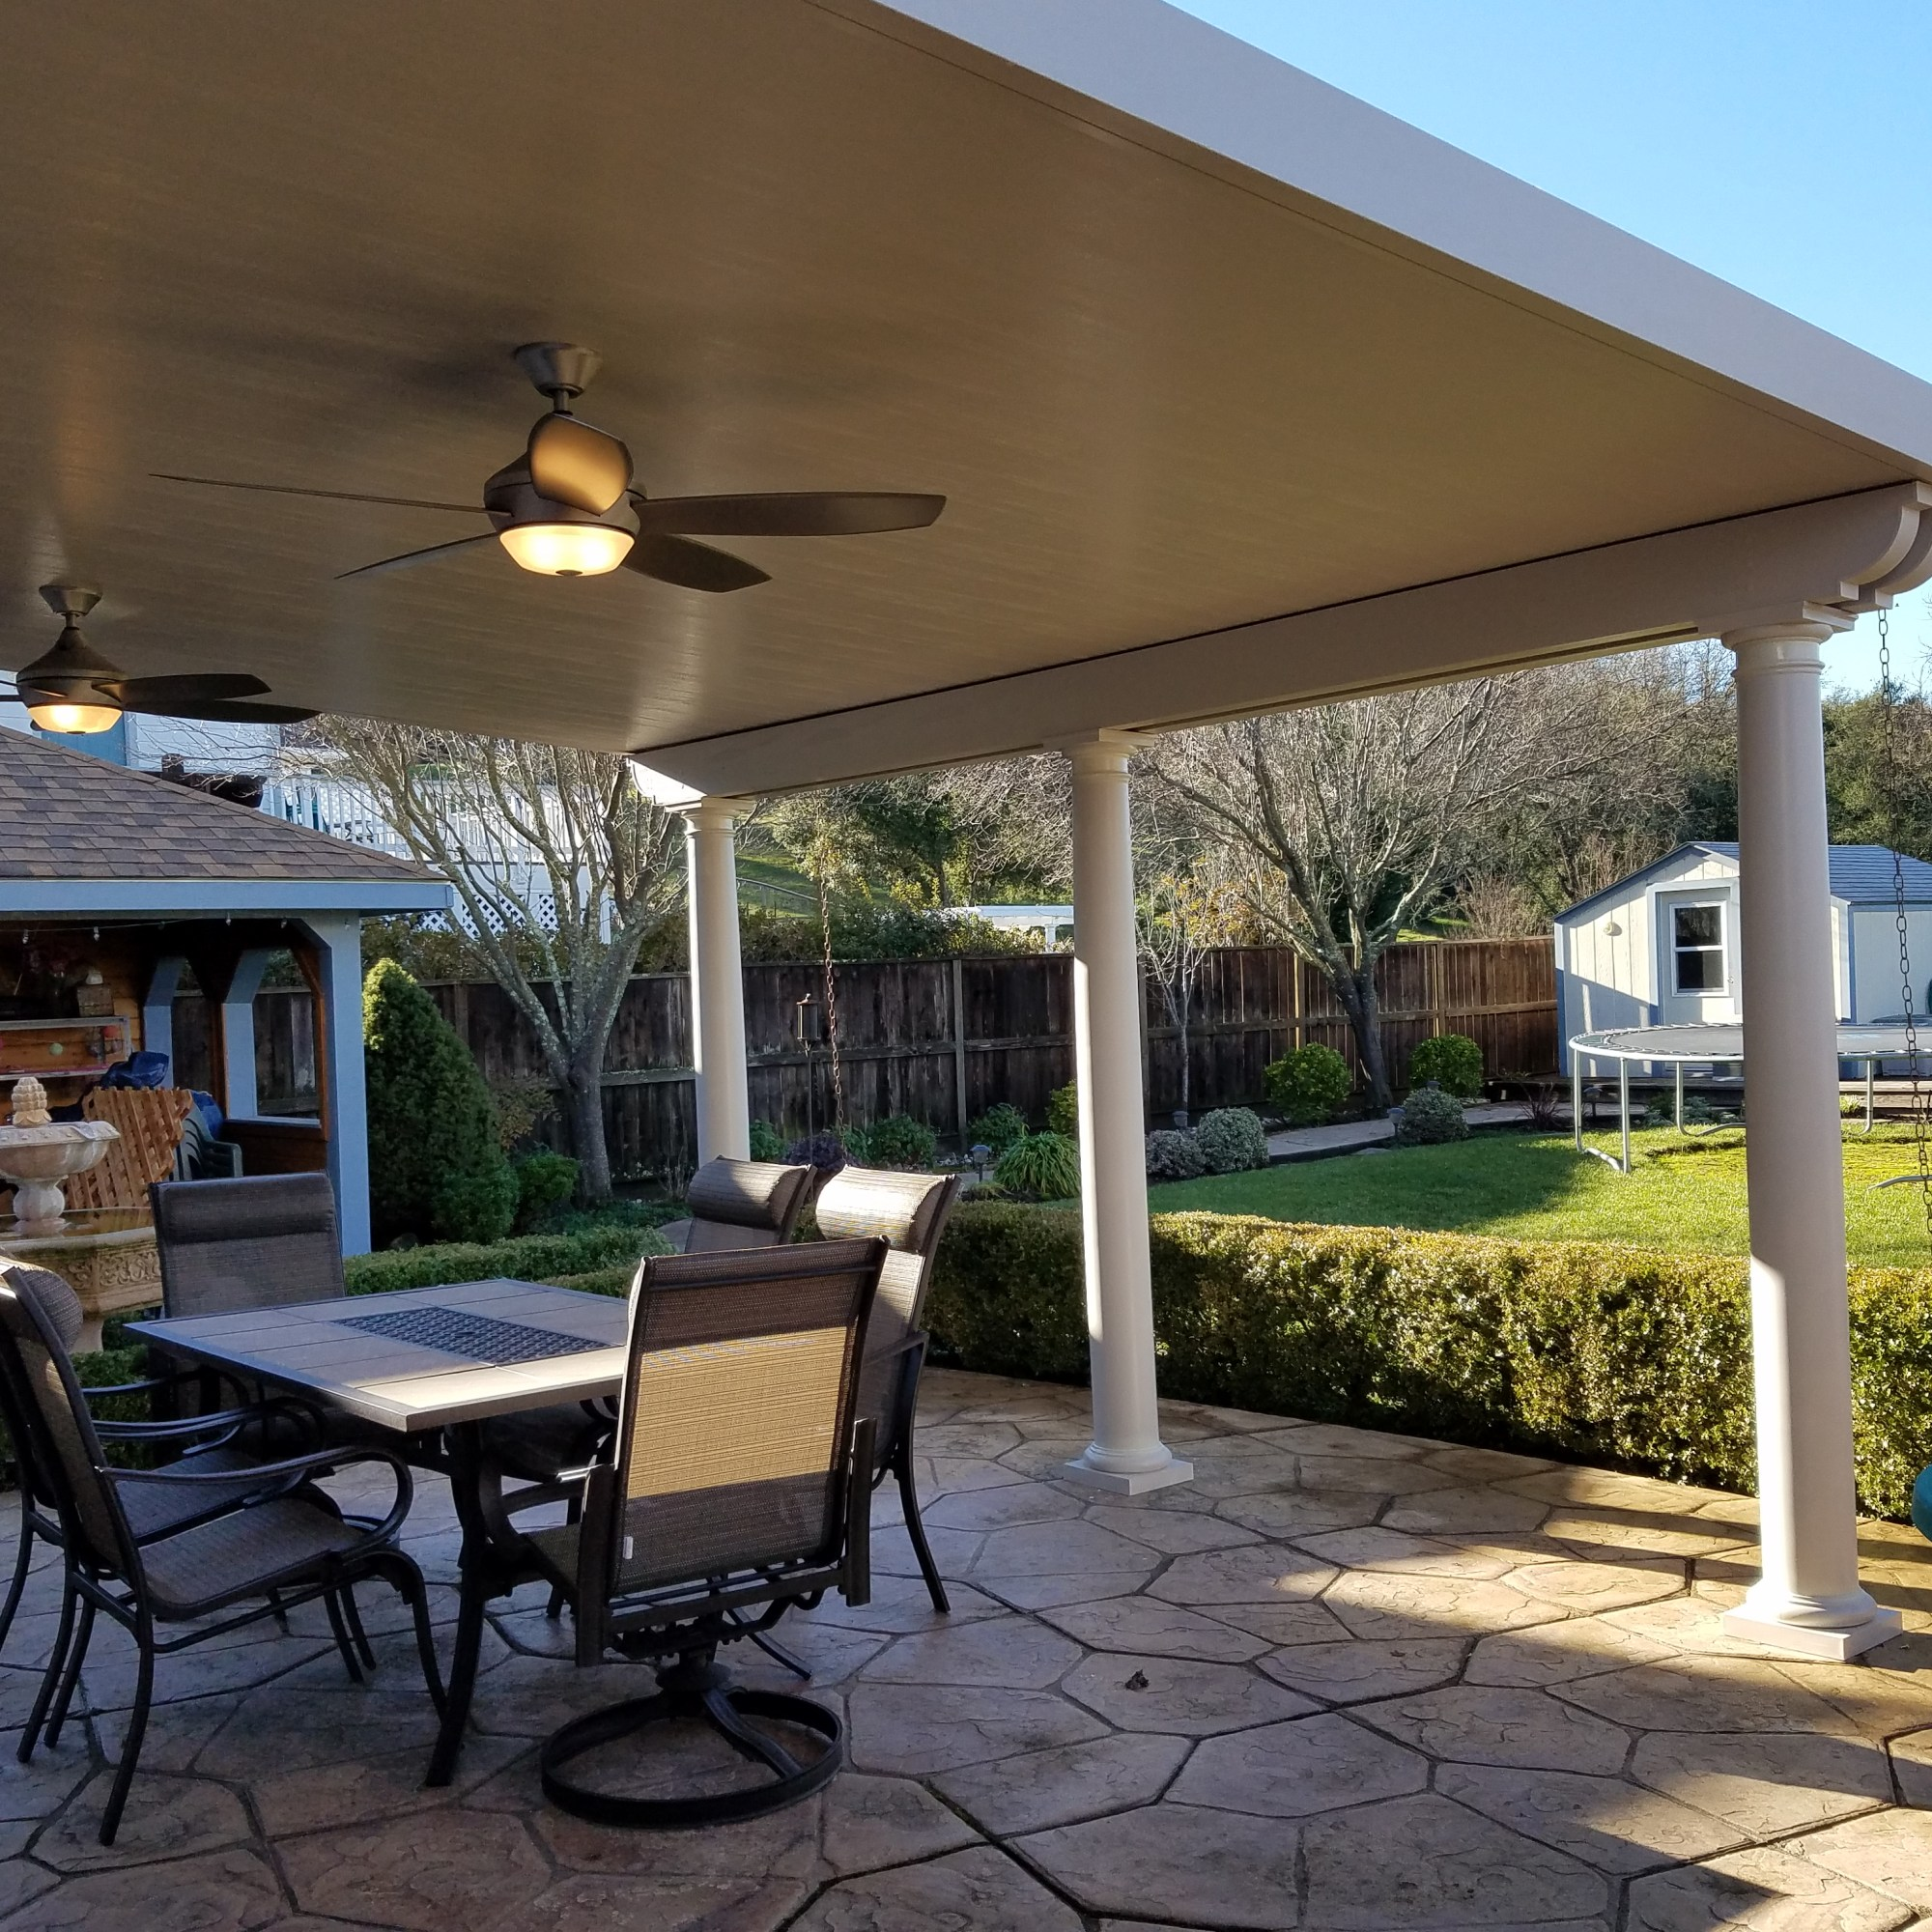 Insulated Roof Patio Cover with fans